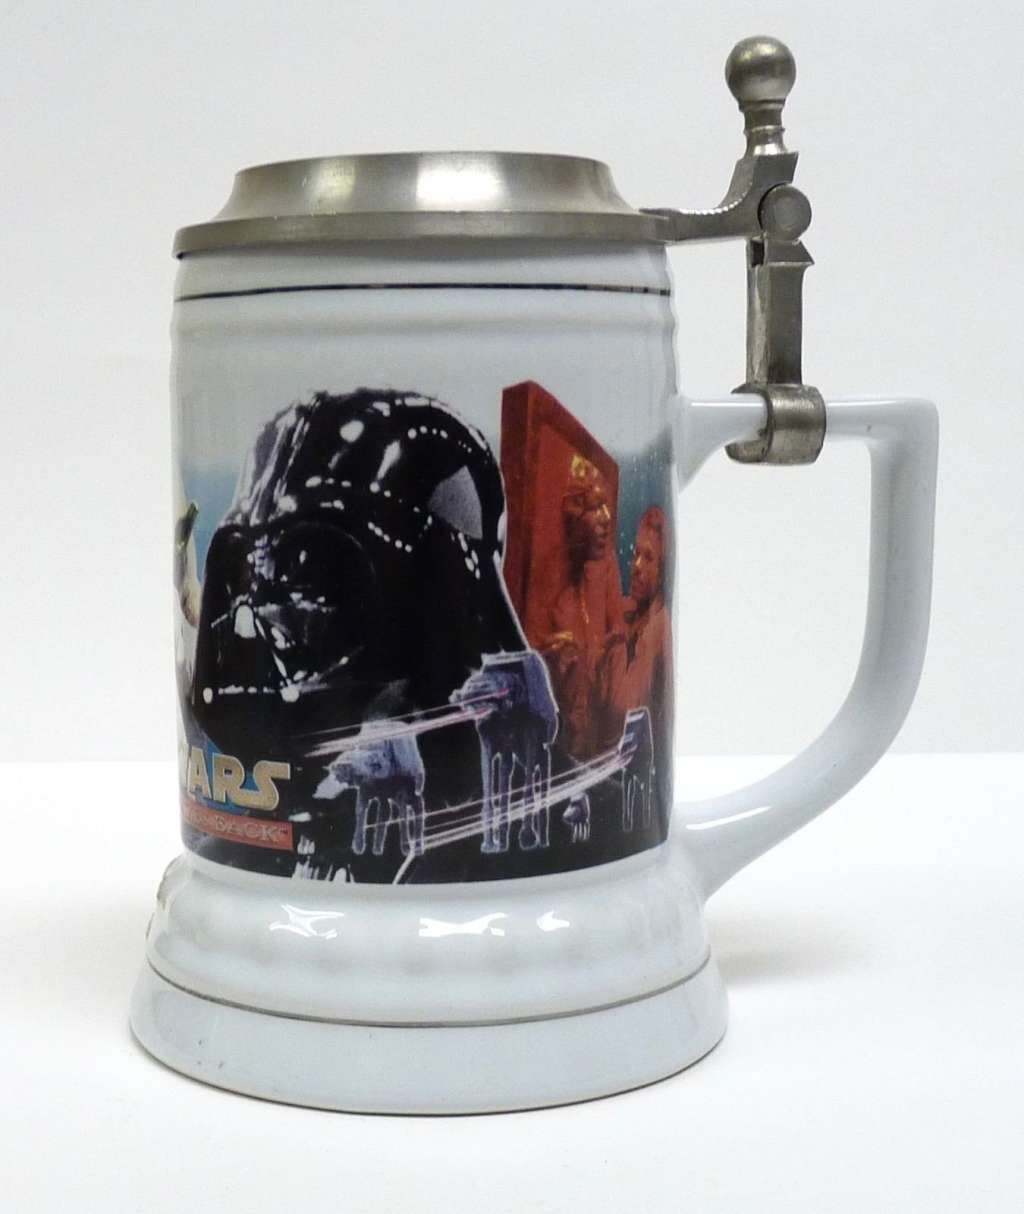 4 Star Wars Beer Steins For May The Fourth